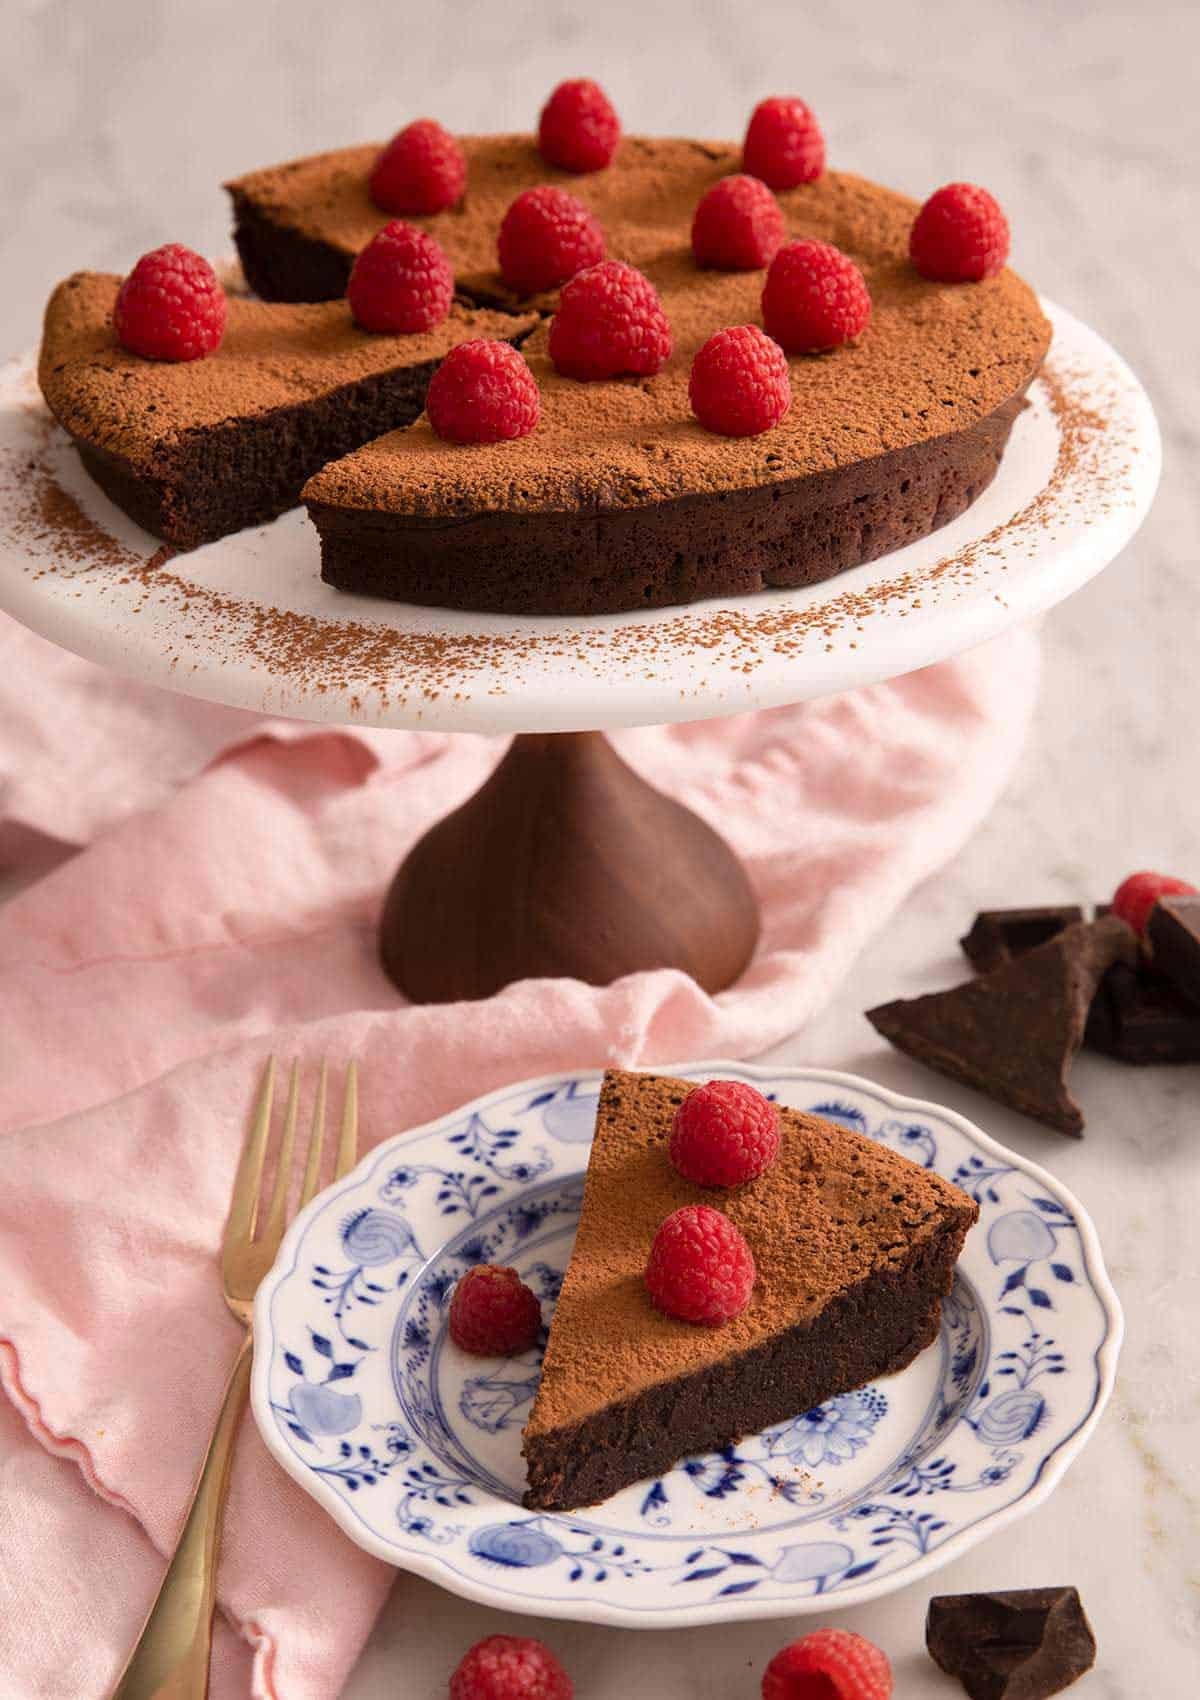 A flourless chocolate cake on a cake stand with a slice on a plate